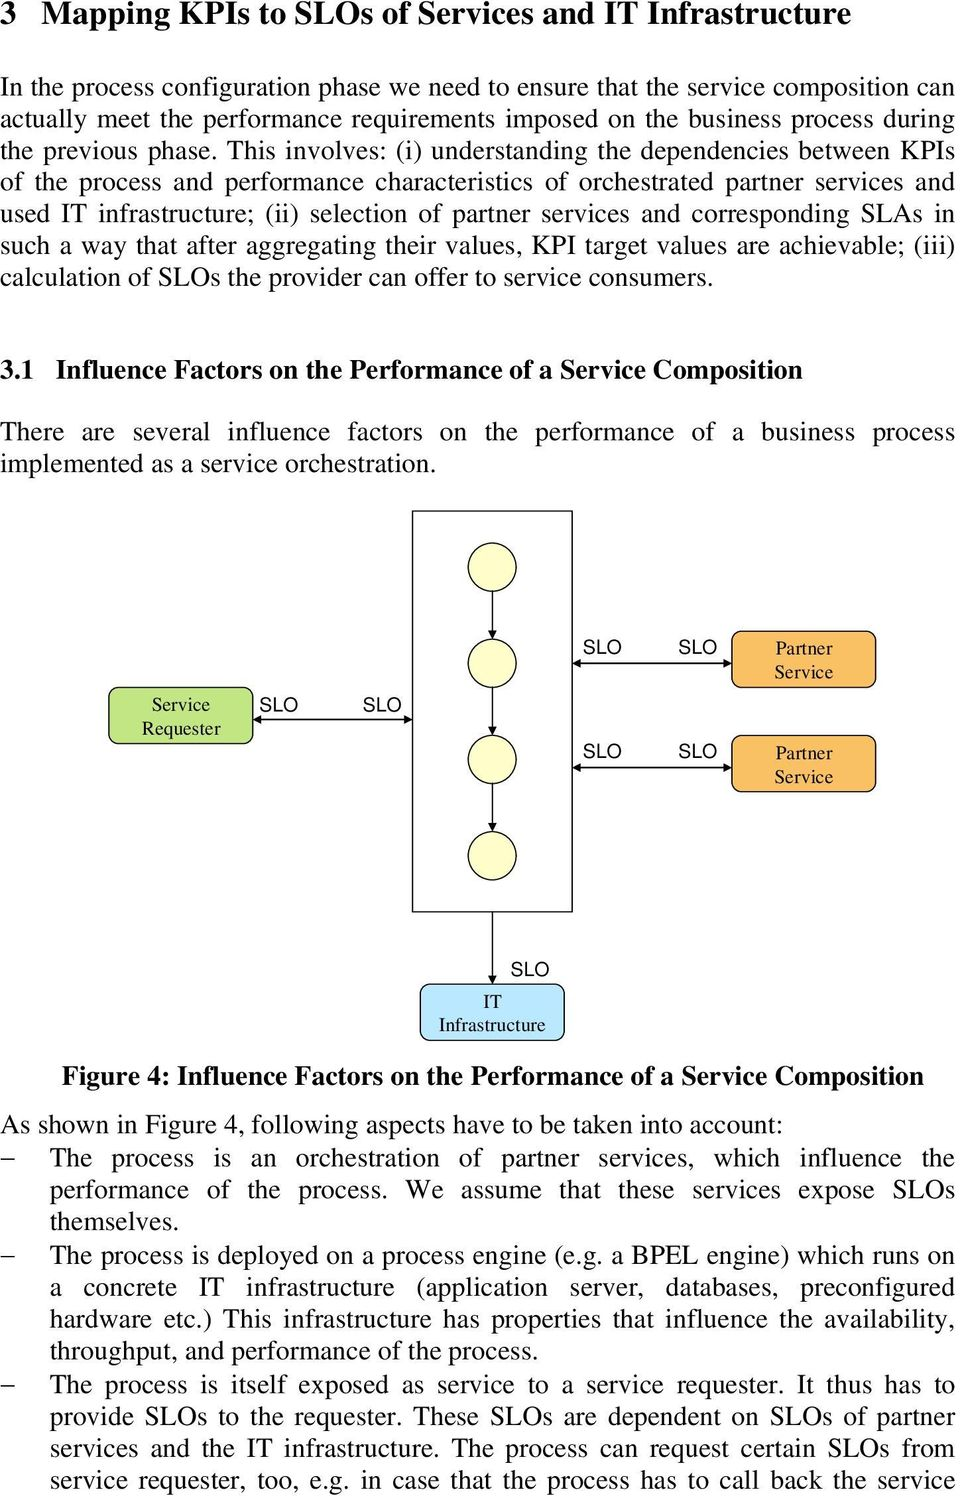 This involves: (i) understanding the dependencies between KPIs of the process and performance characteristics of orchestrated partner services and used IT infrastructure; (ii) selection of partner